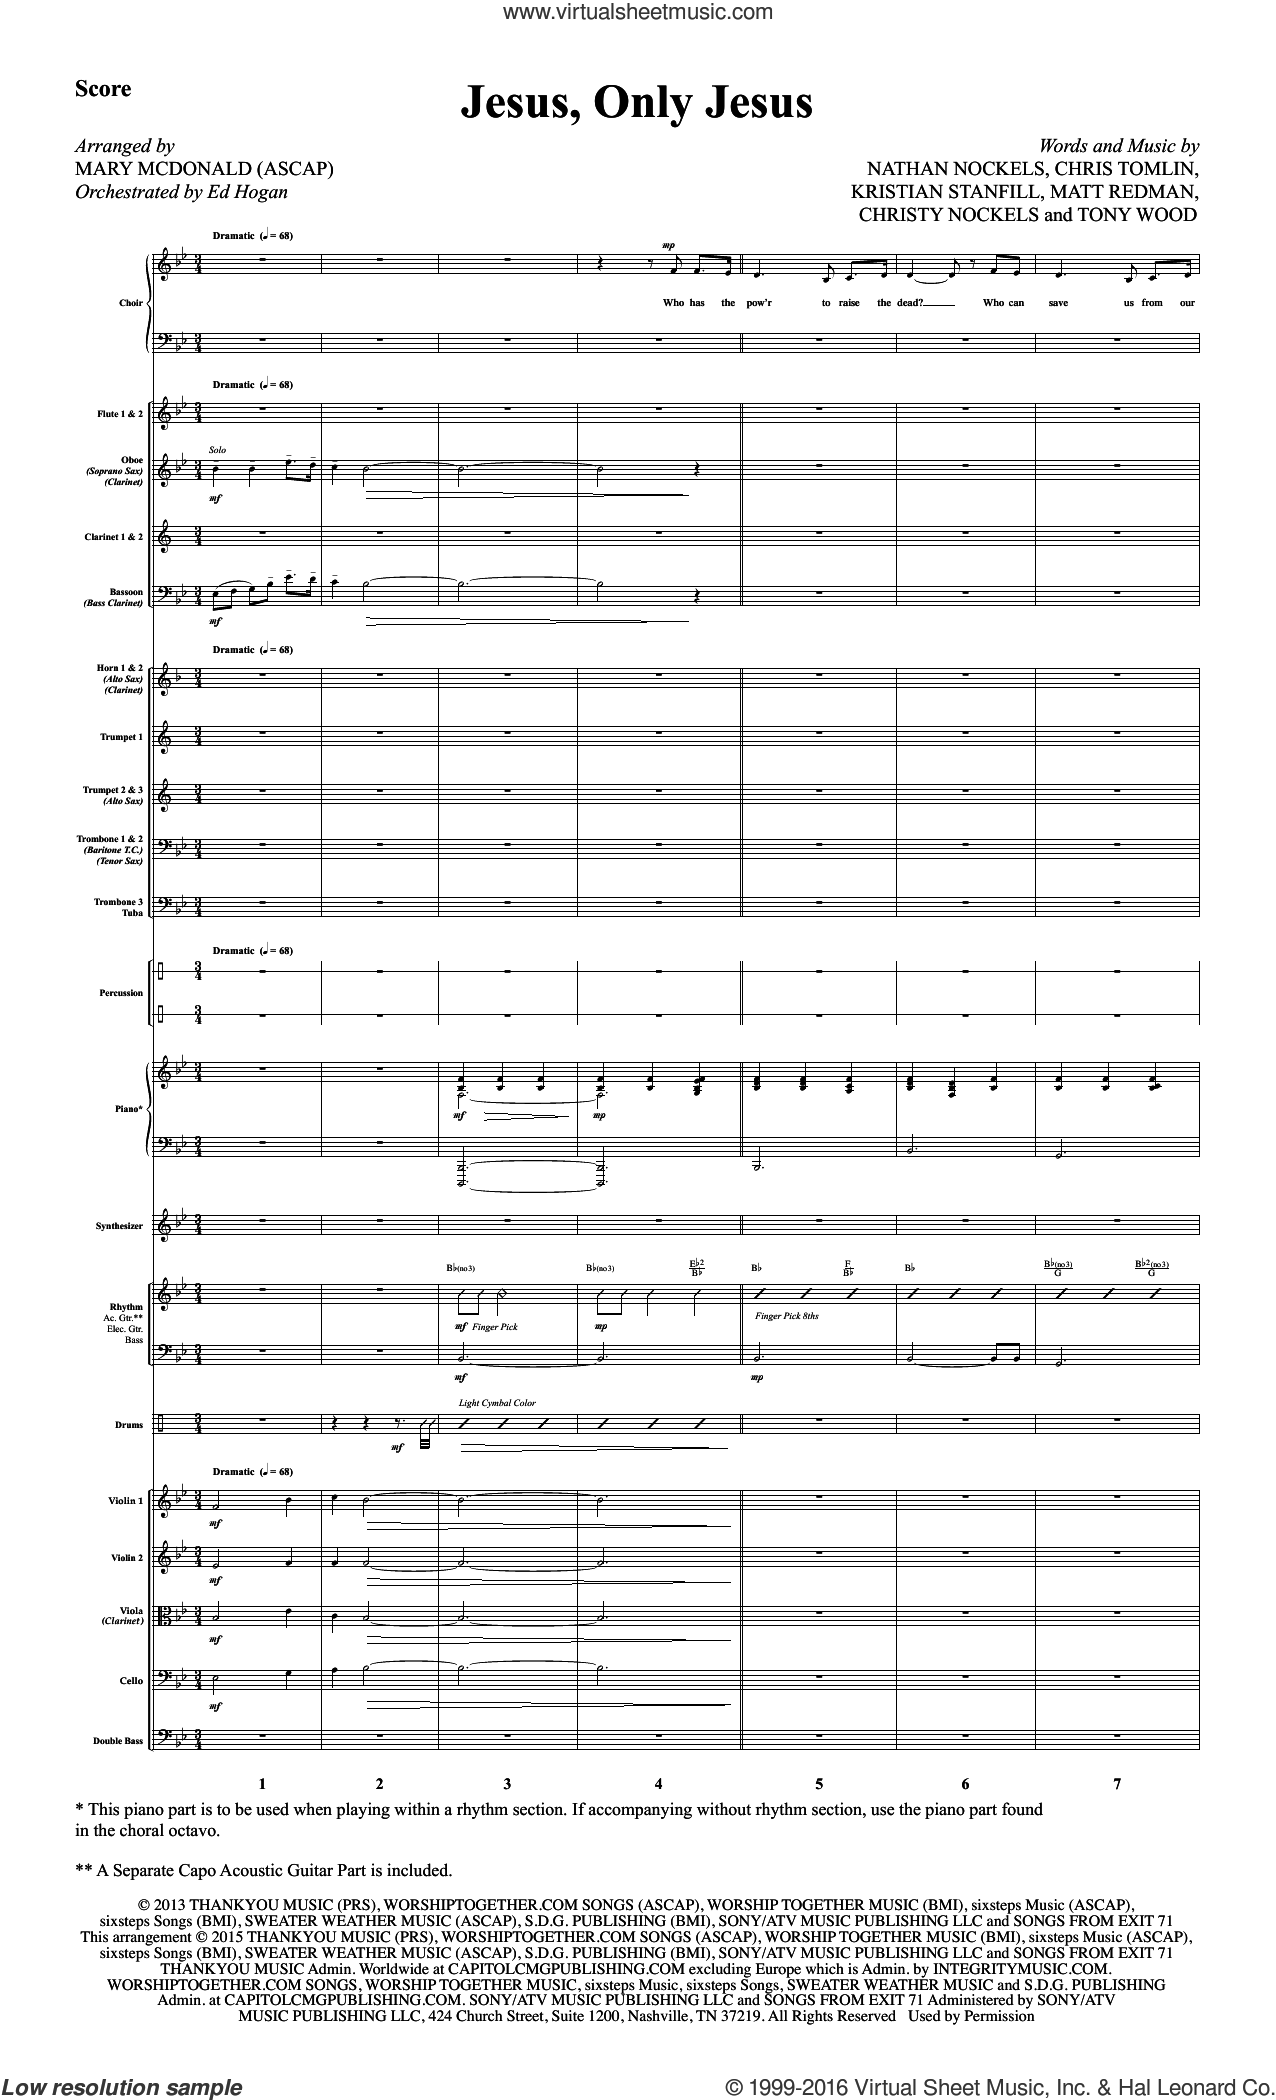 Jesus, Only Jesus (COMPLETE) sheet music for orchestra by Chris Tomlin, Mary McDonald, Passion, Tony Wood, Christy Nockels, Kristian Stanfill and Matt Redman, intermediate orchestra. Score Image Preview.